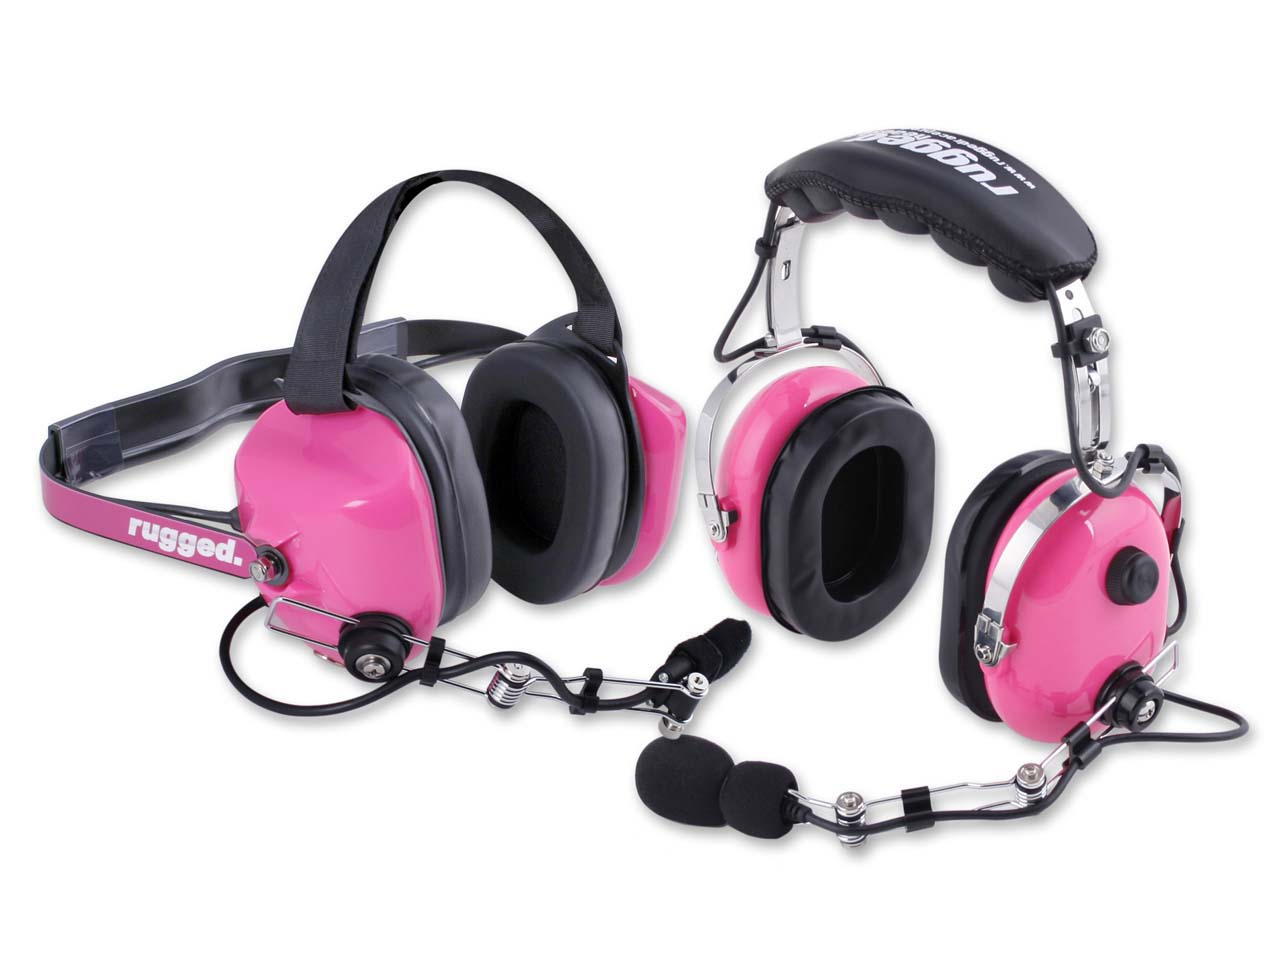 Side By Side Atv >> Rugged Radios Introduces Pink Headsets for the Ladies and ...